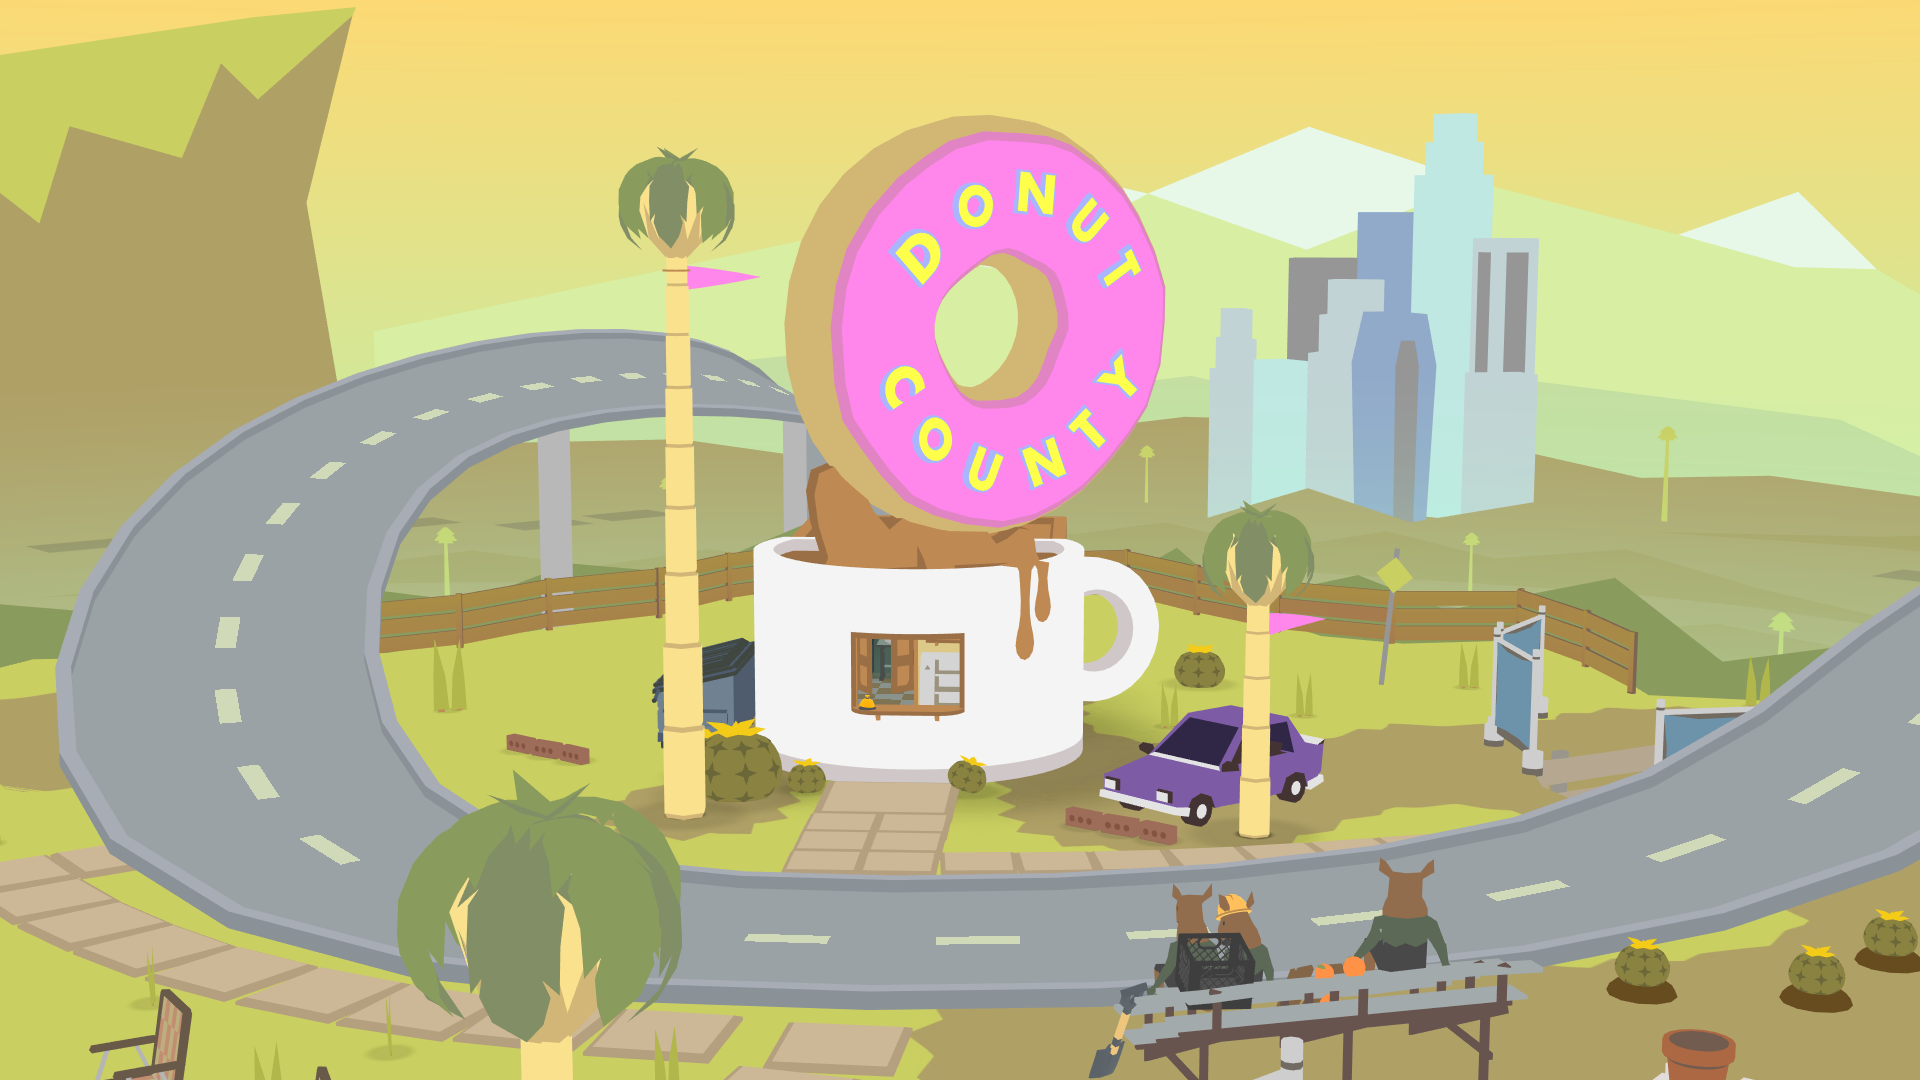 Physical release of Donut County coming your way this year